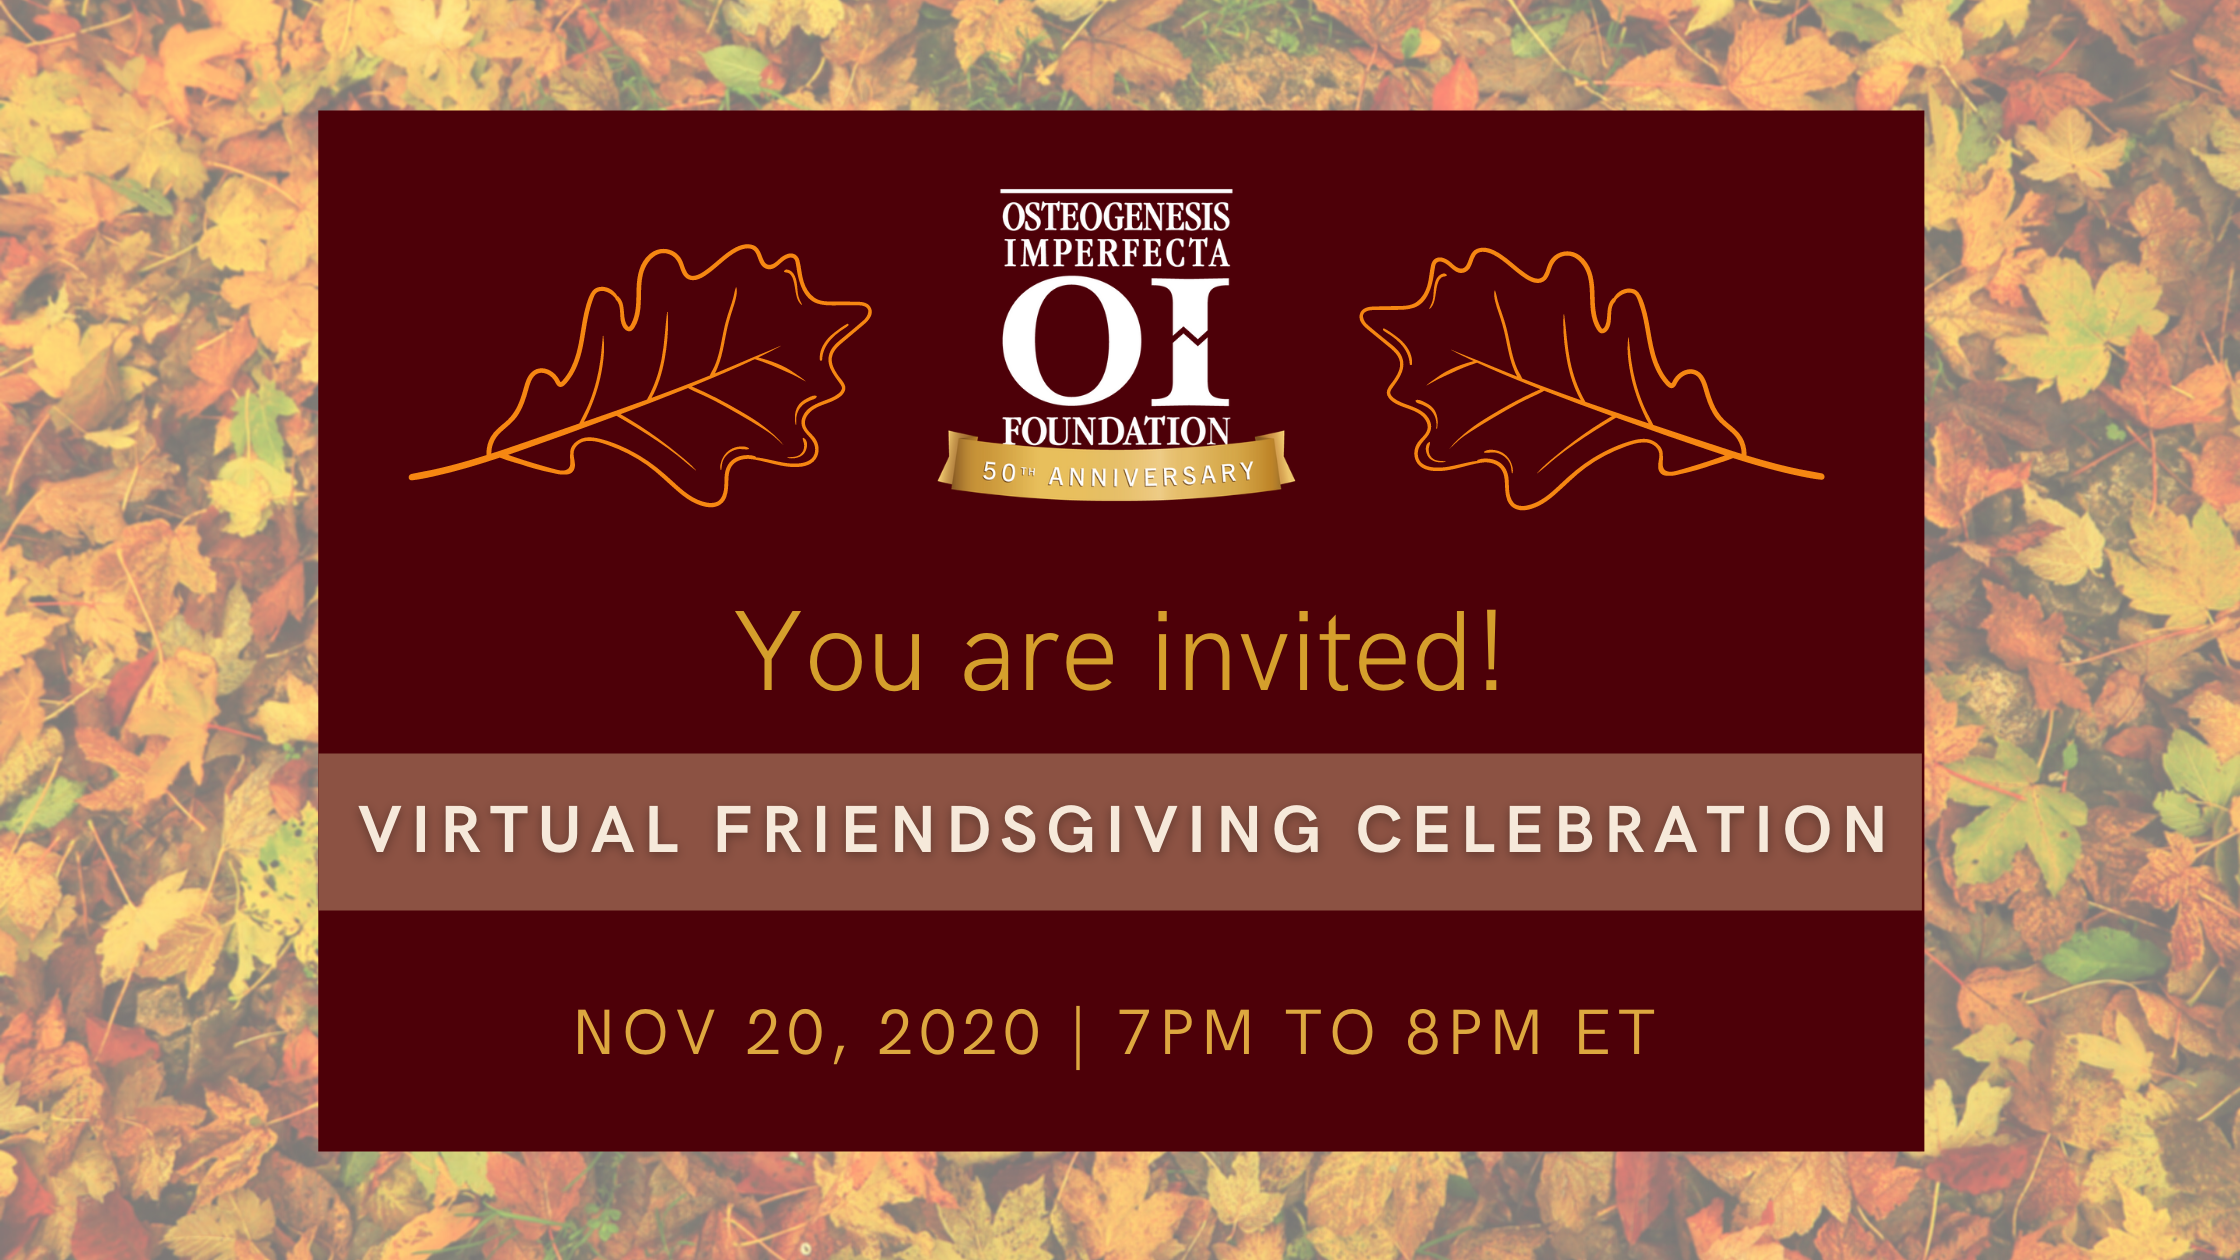 Please join us for a Virtual Friendsgiving Celebration!